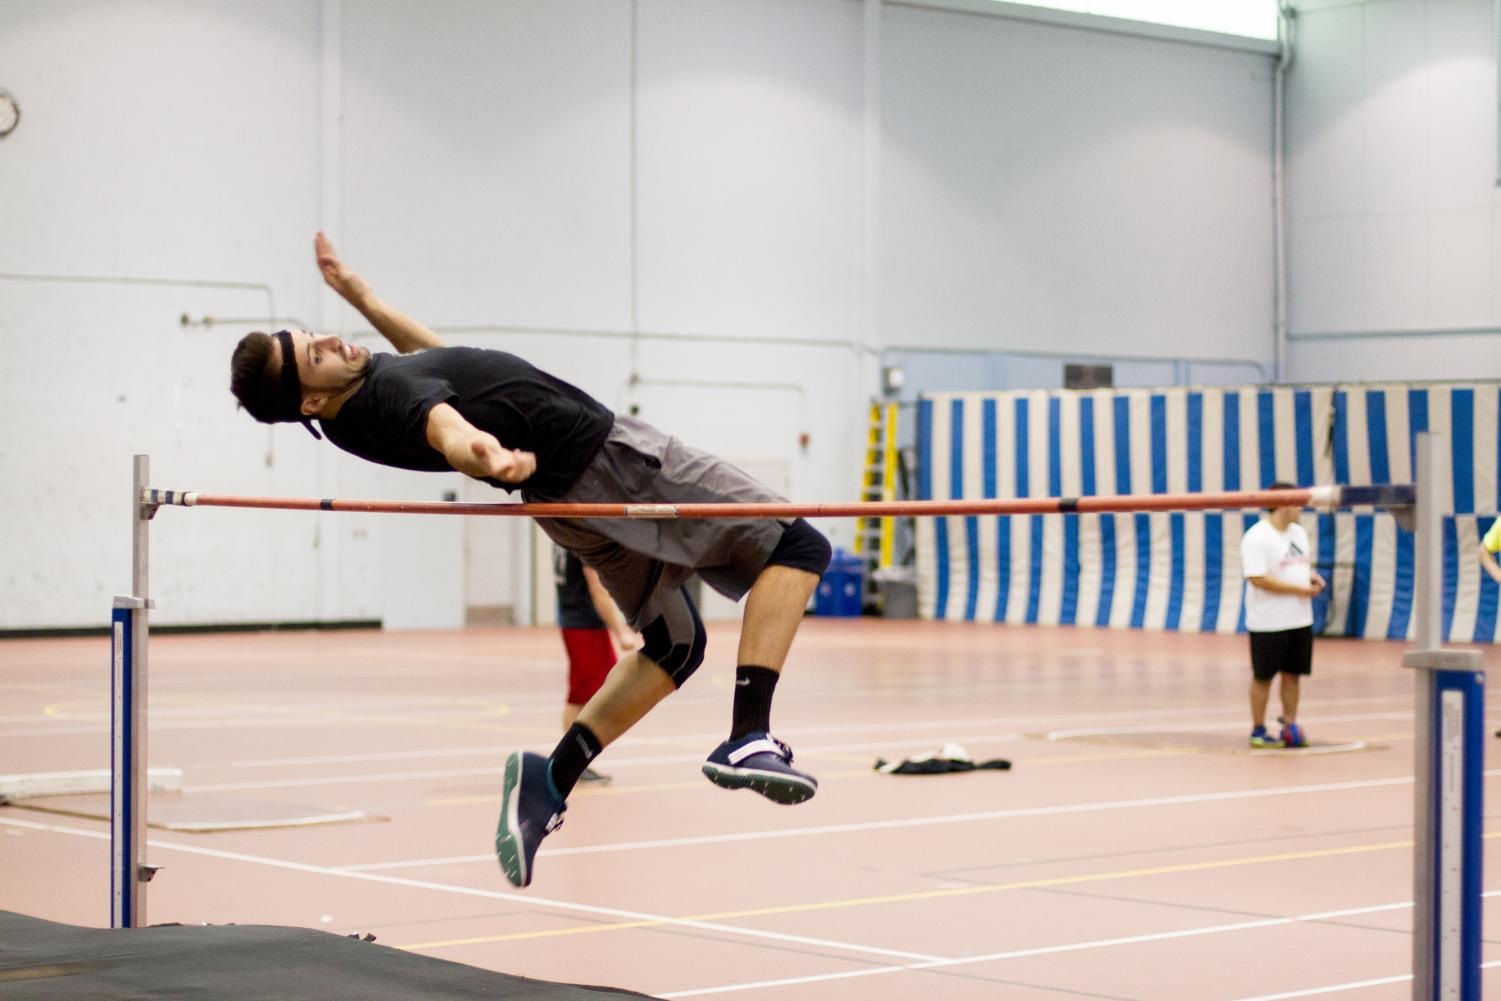 Nick Bullo clears the bar while practicing for high jump during an indoor practice session.